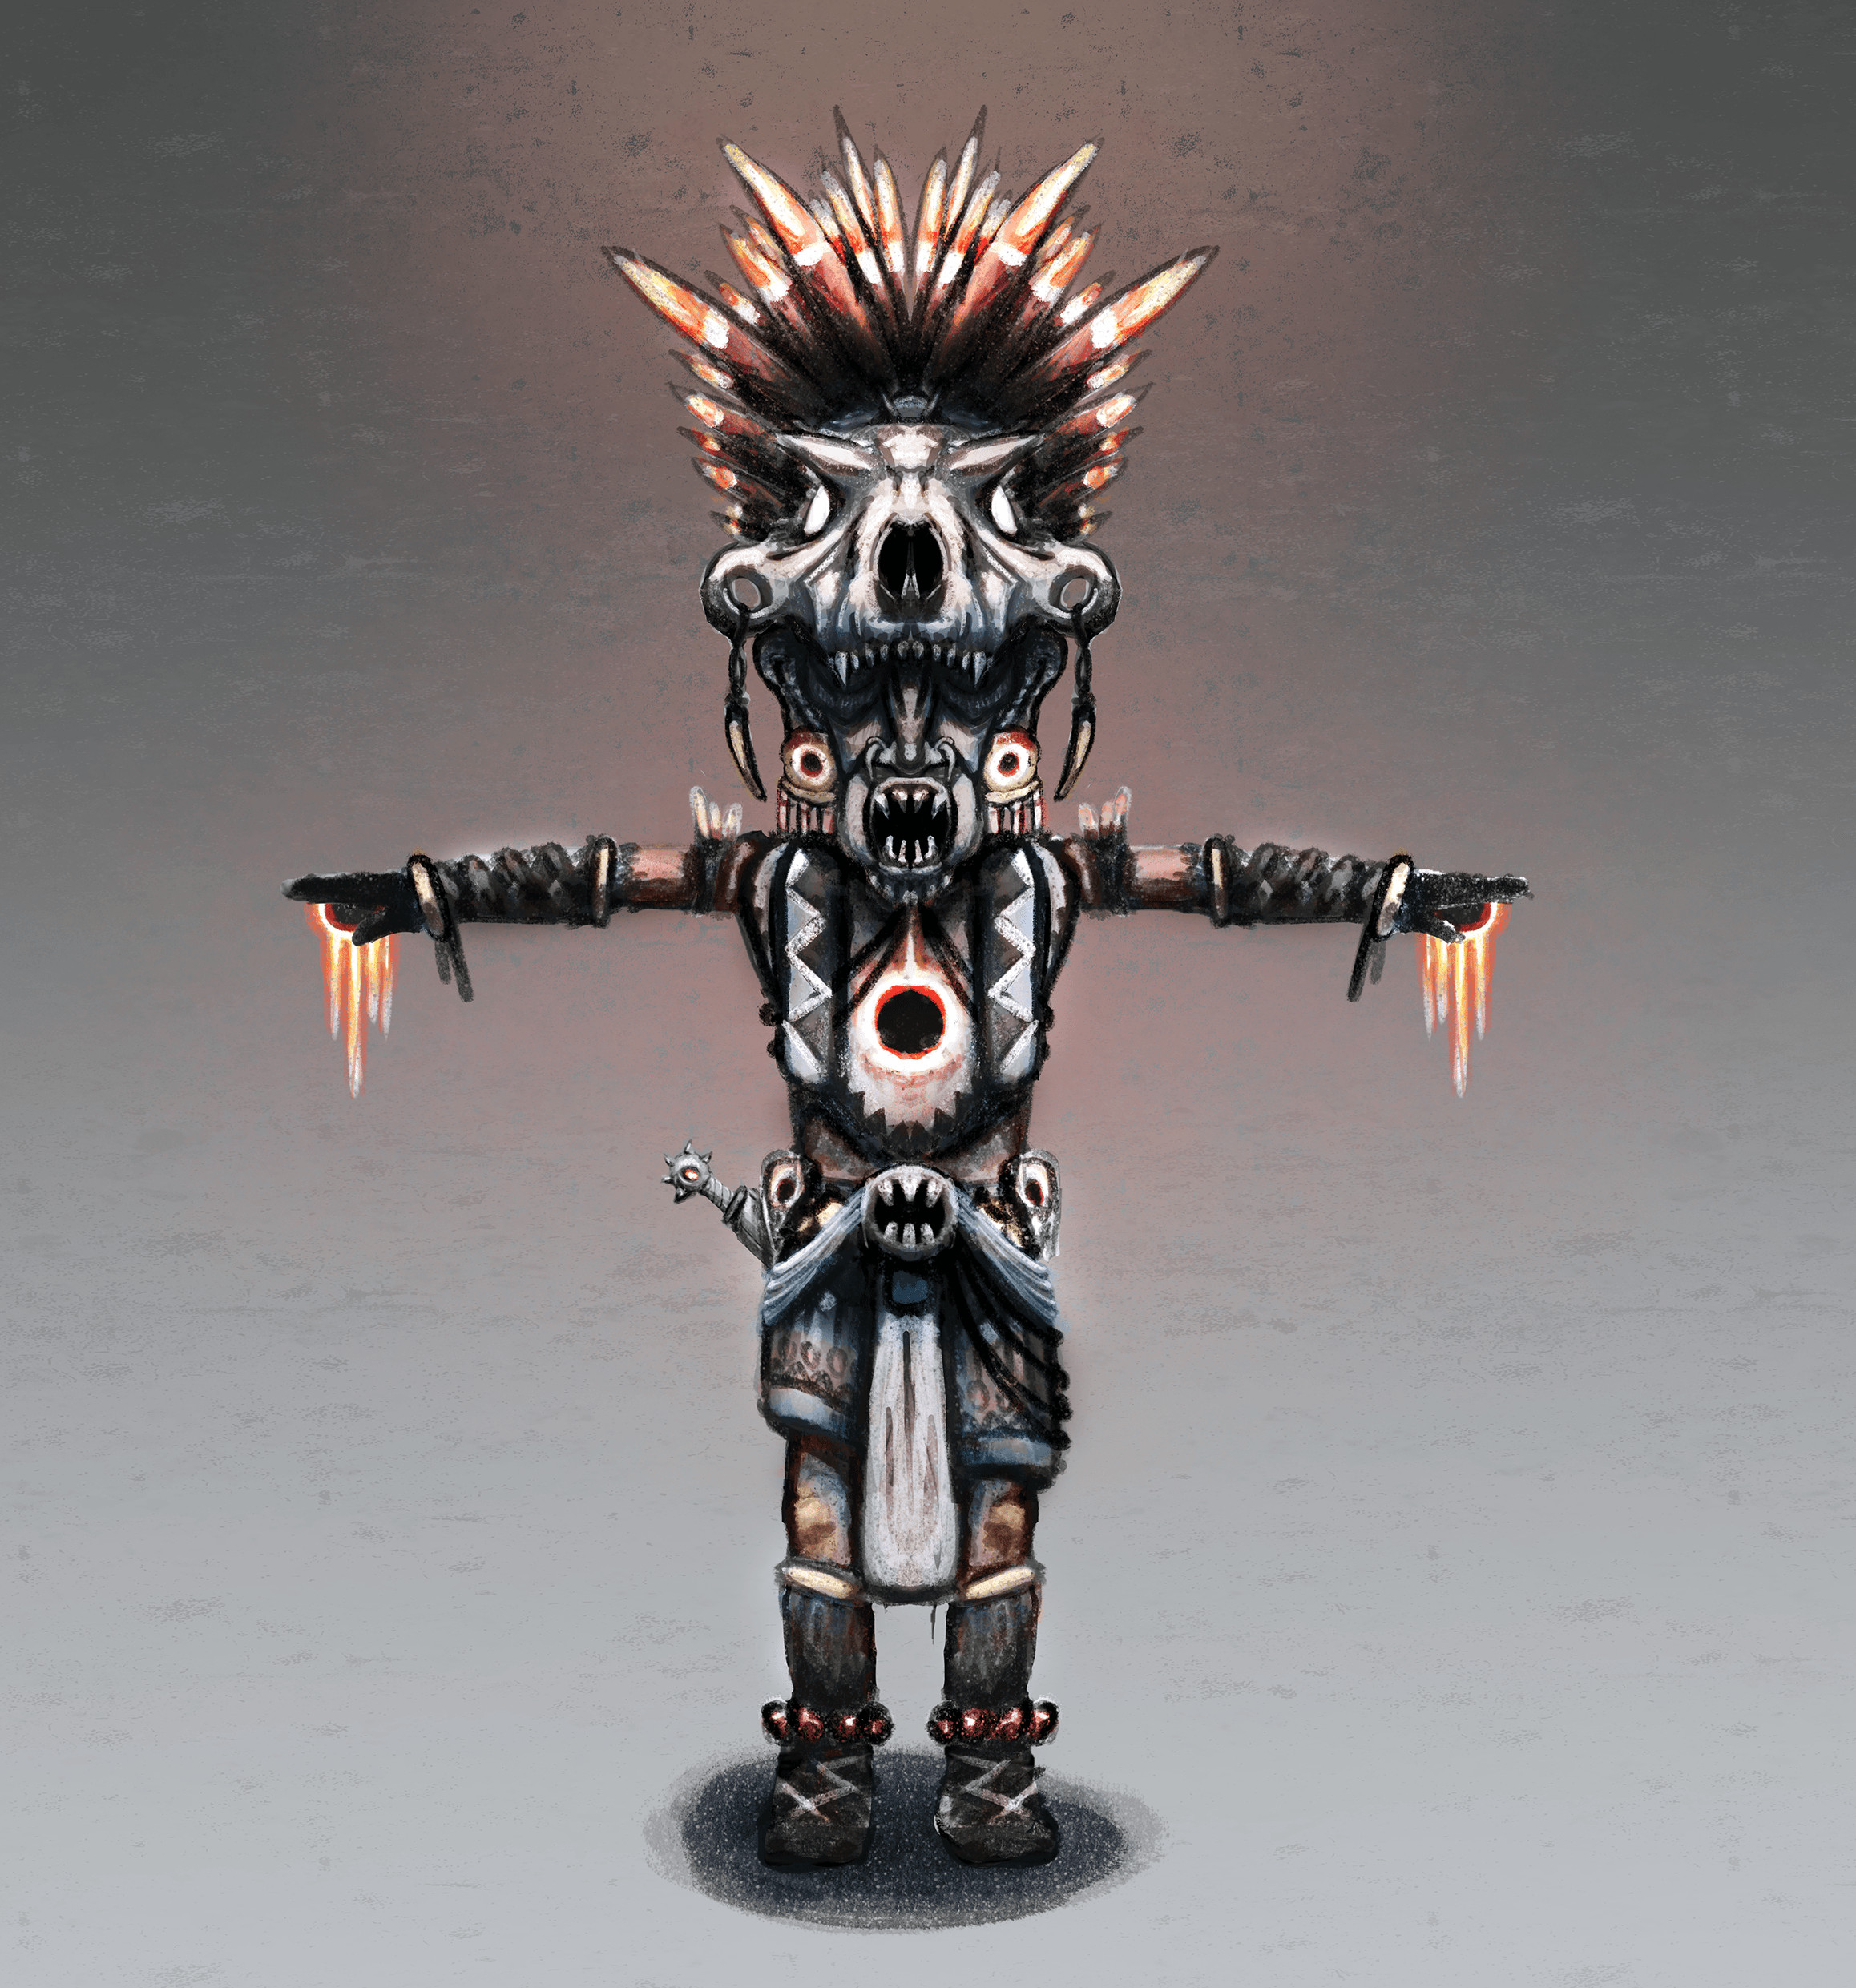 Concept Art of the final boss of Tiny God.